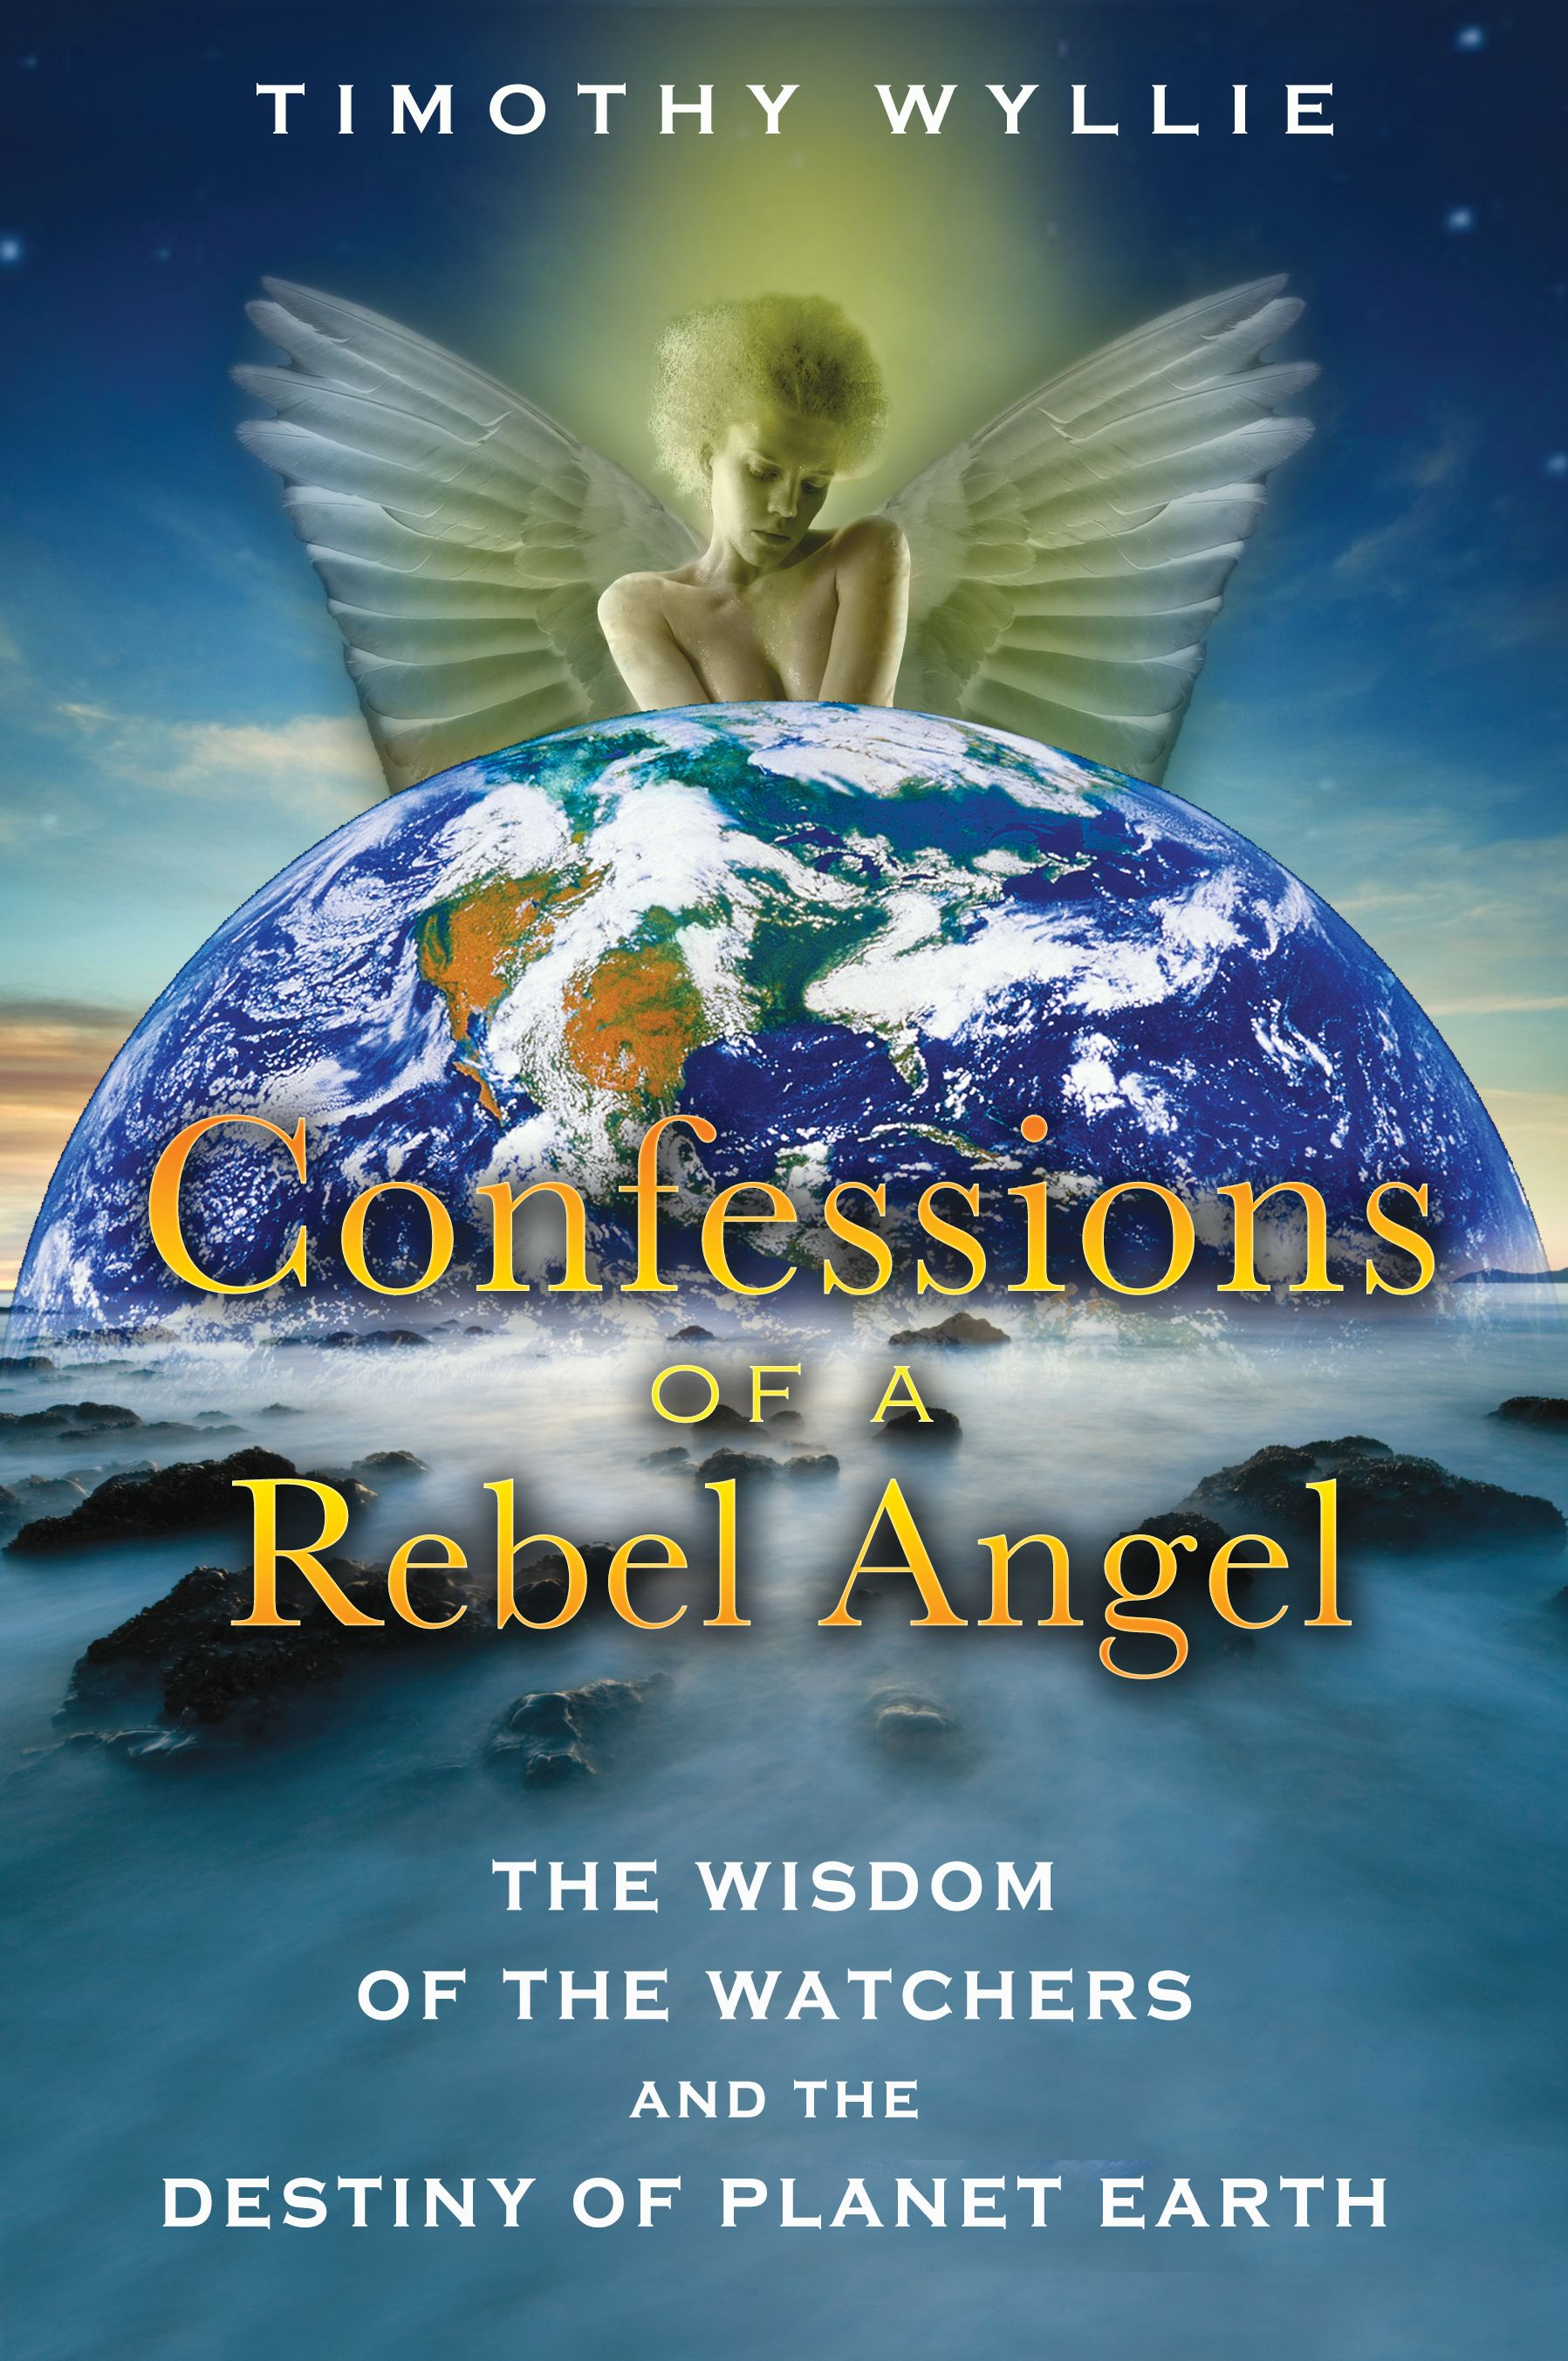 Confessions-of-a-rebel-angel-9781591431473_hr